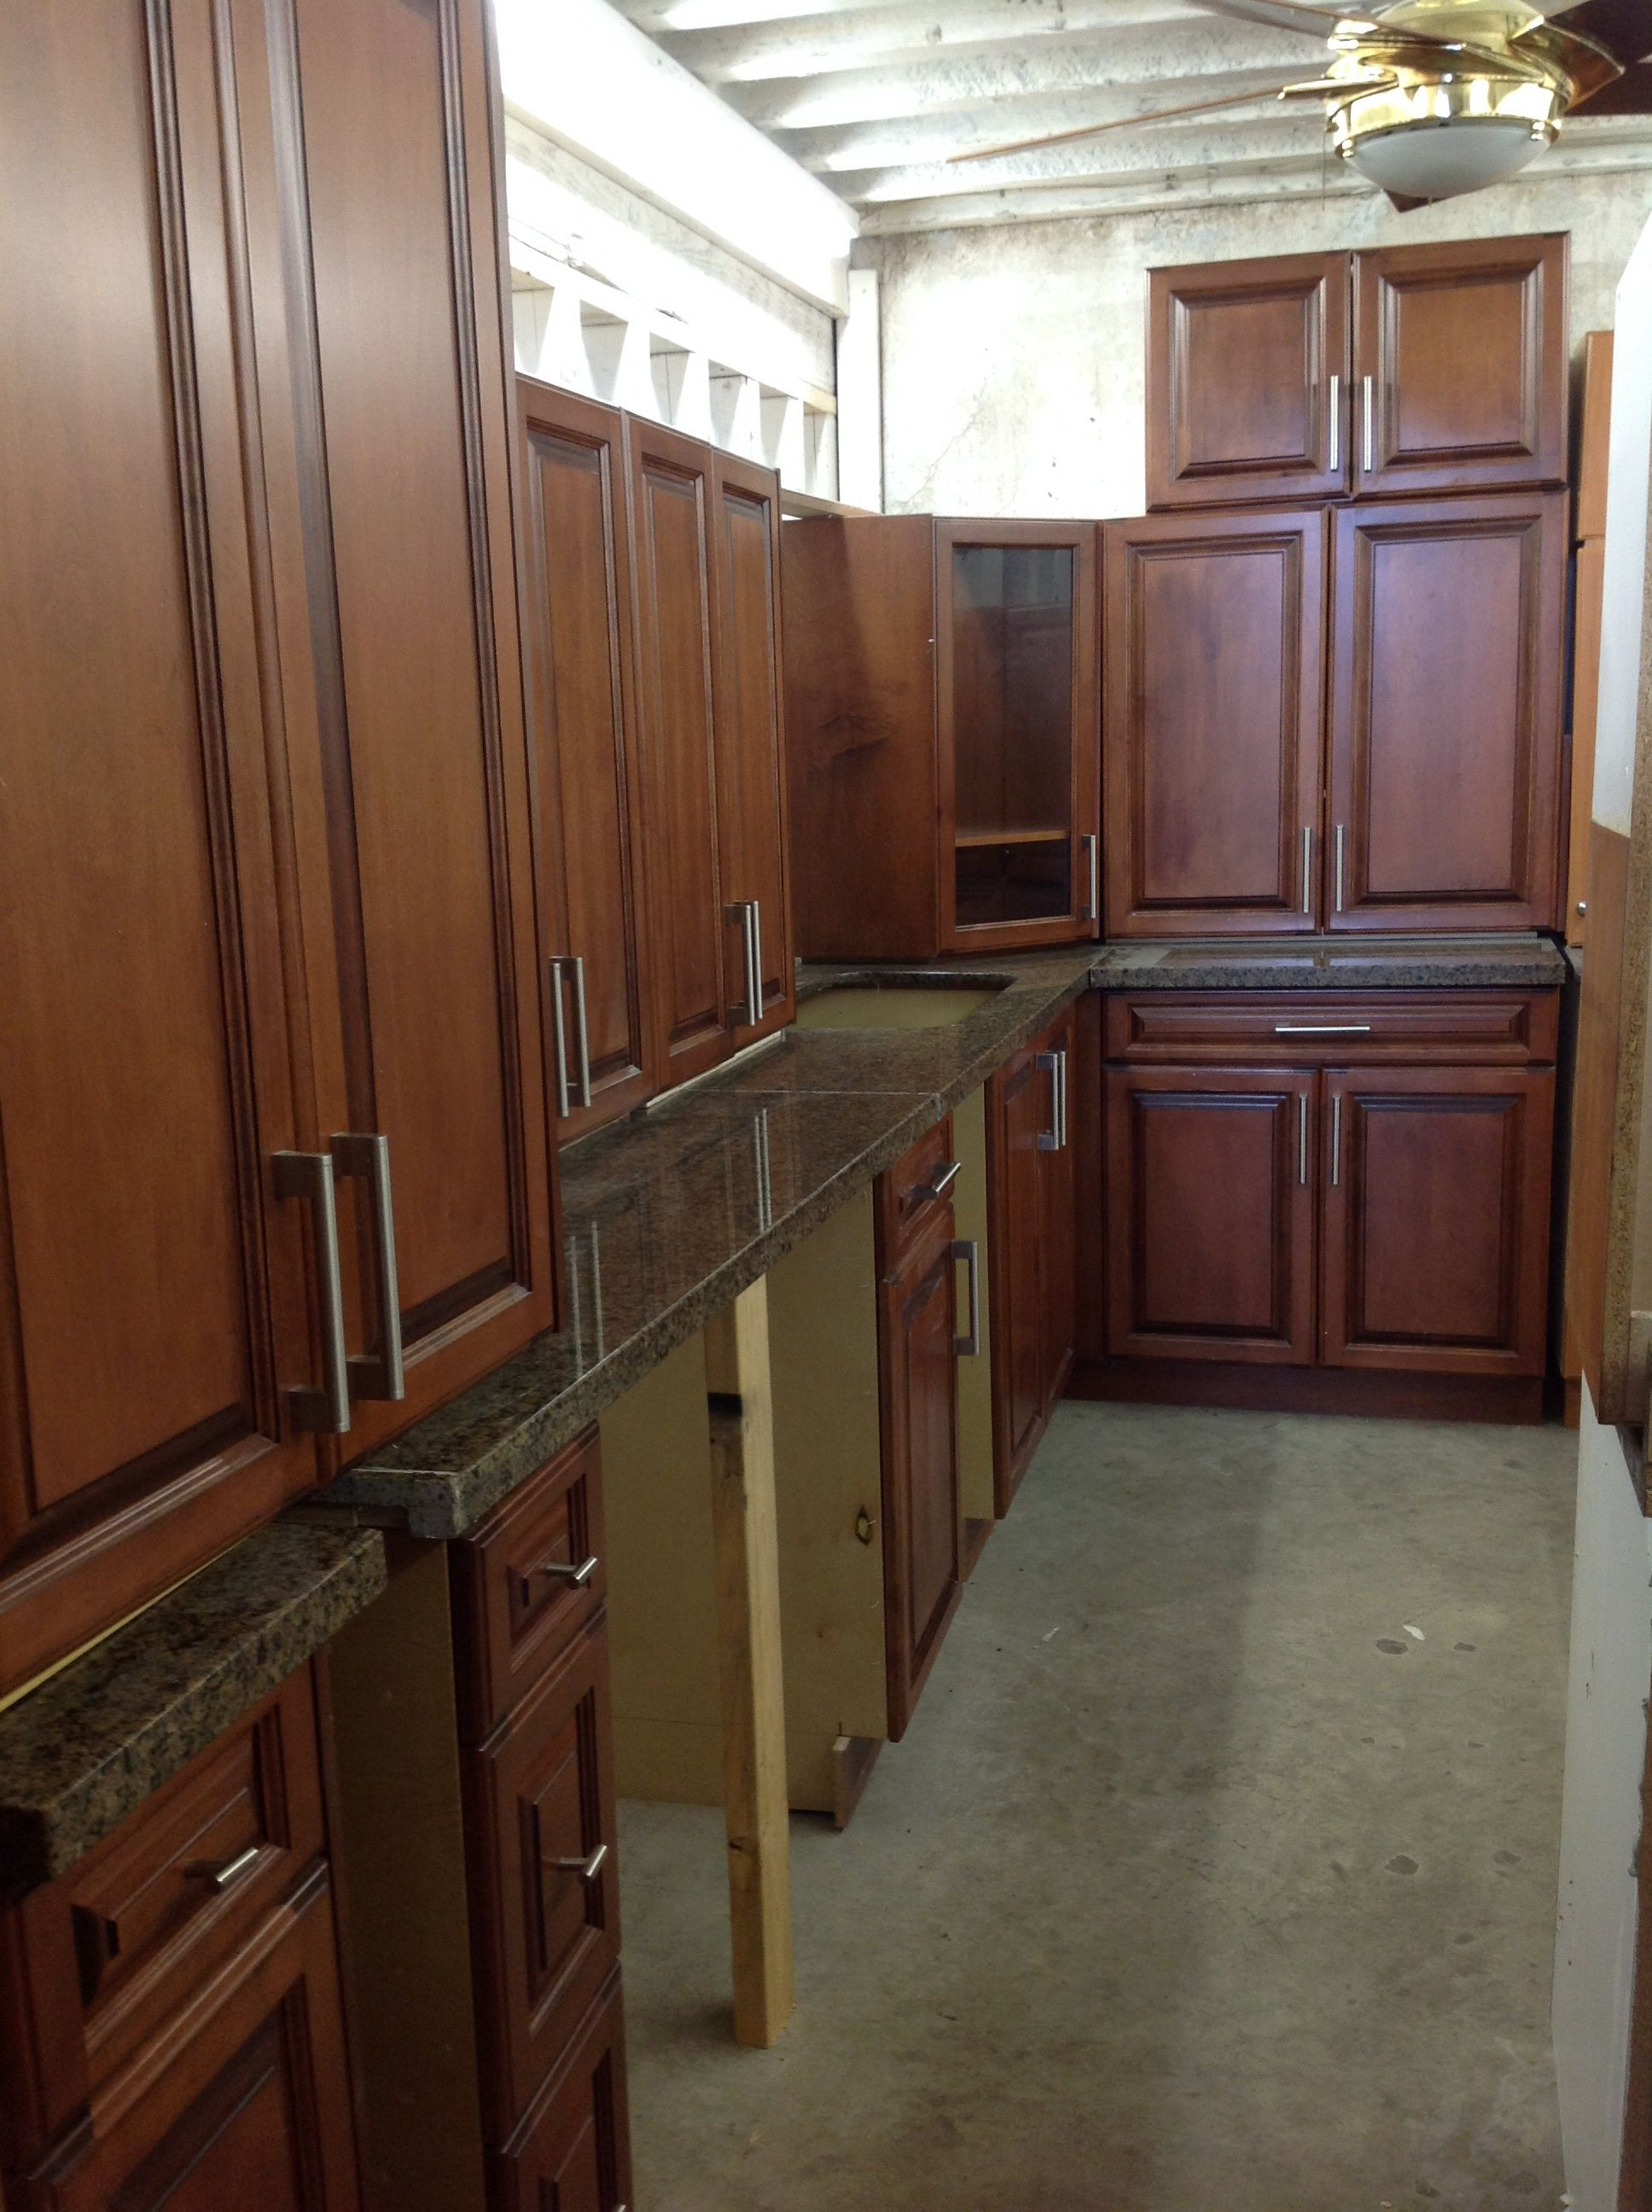 Used Kitchen Cabinets Chilliwack New And Used Building Materials Inc Used Kitchen Cabinets Kitchen Cabinets Kitchen